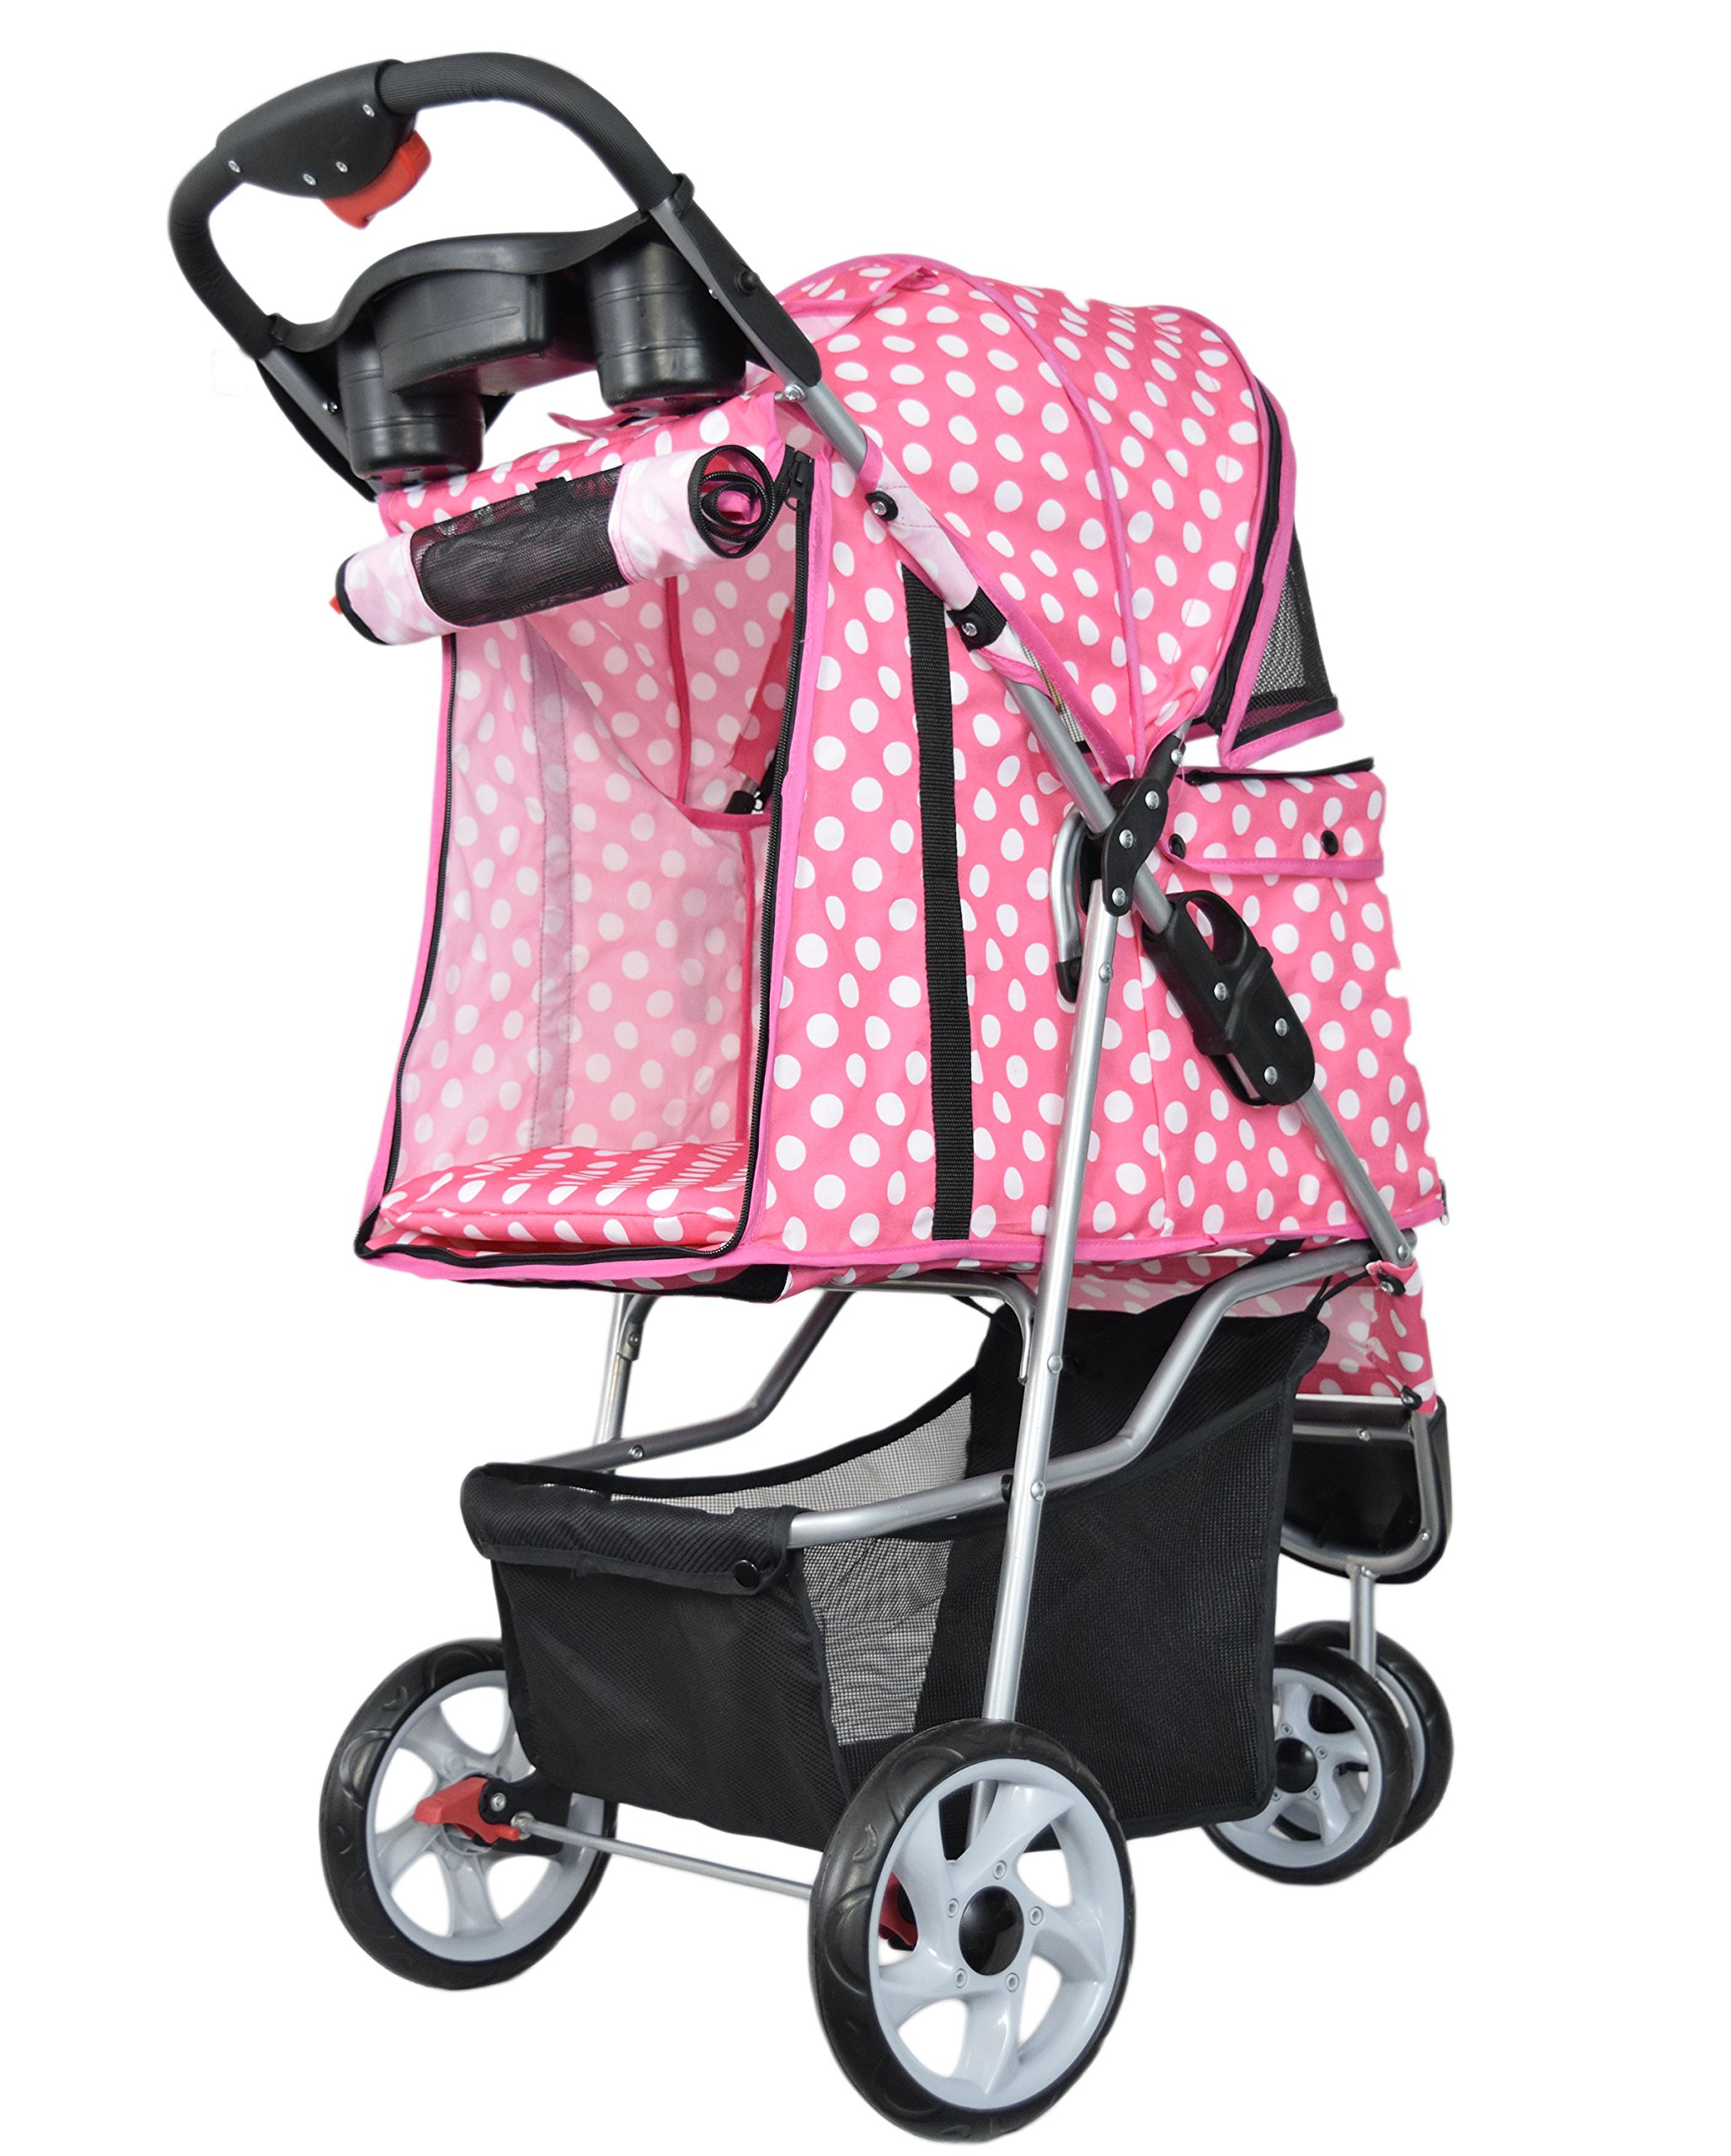 VIVO Three Wheel Pet Stroller, for Cat, Dog and More, Foldable Carrier Strolling Cart, Multiple Colors (Pink & White Polka Dot) by VIVO (Image #8)